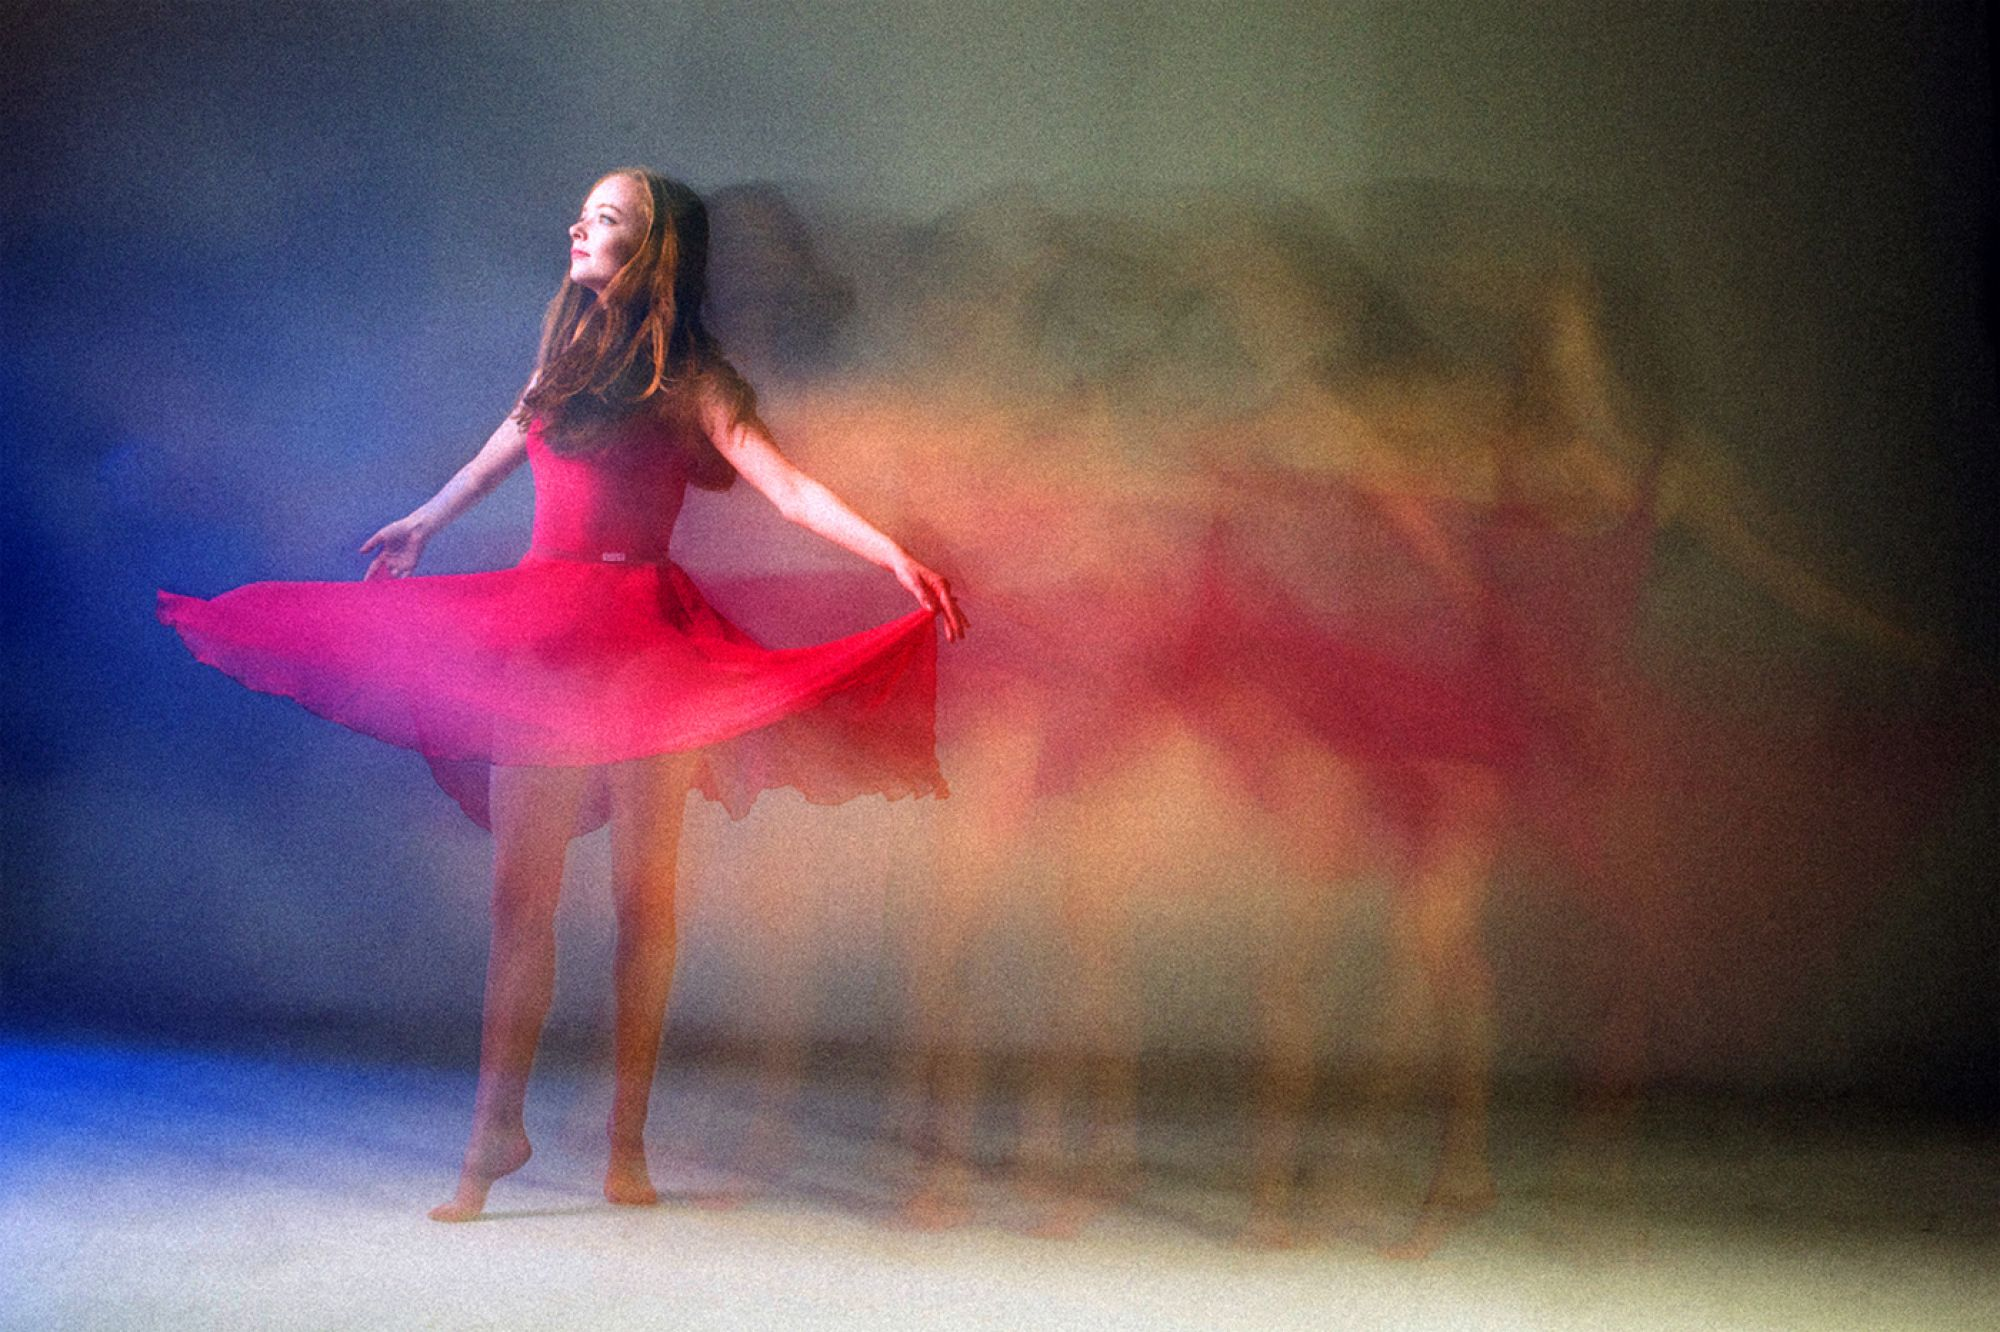 Image of Performance, Event, Dance Photography